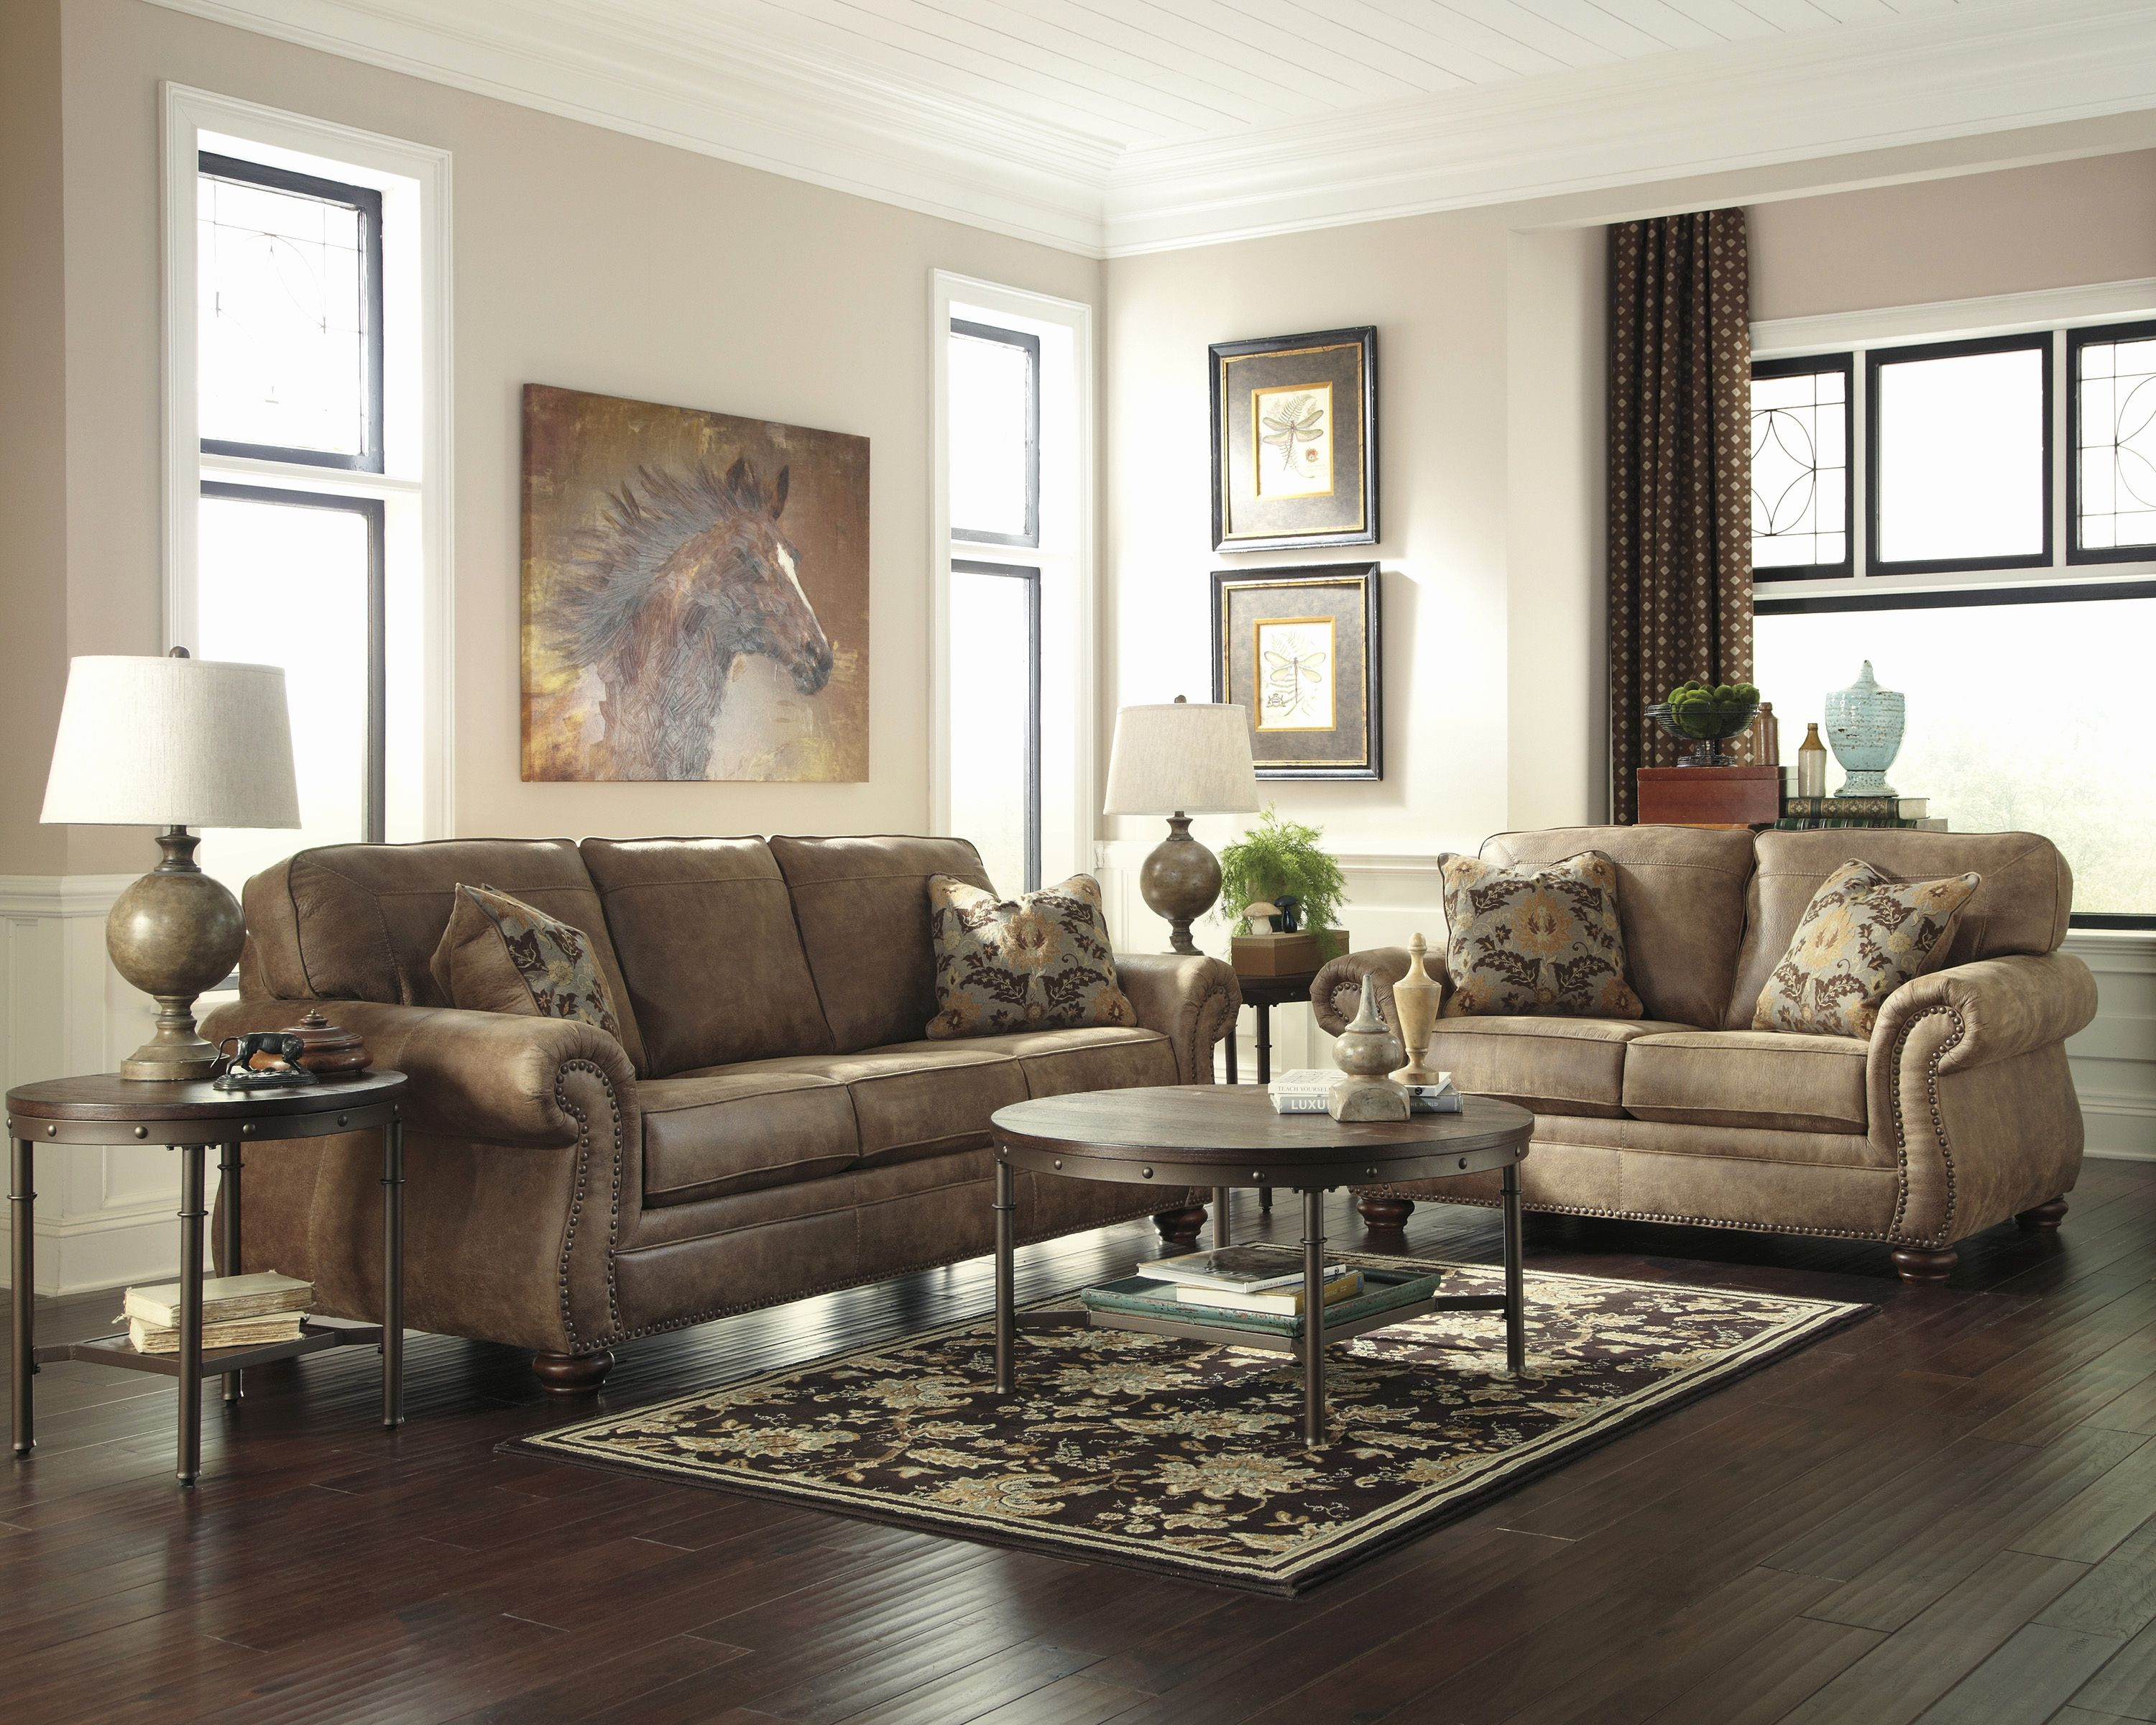 New Living Room Leather sofa Sets Picture cheap leather sofas